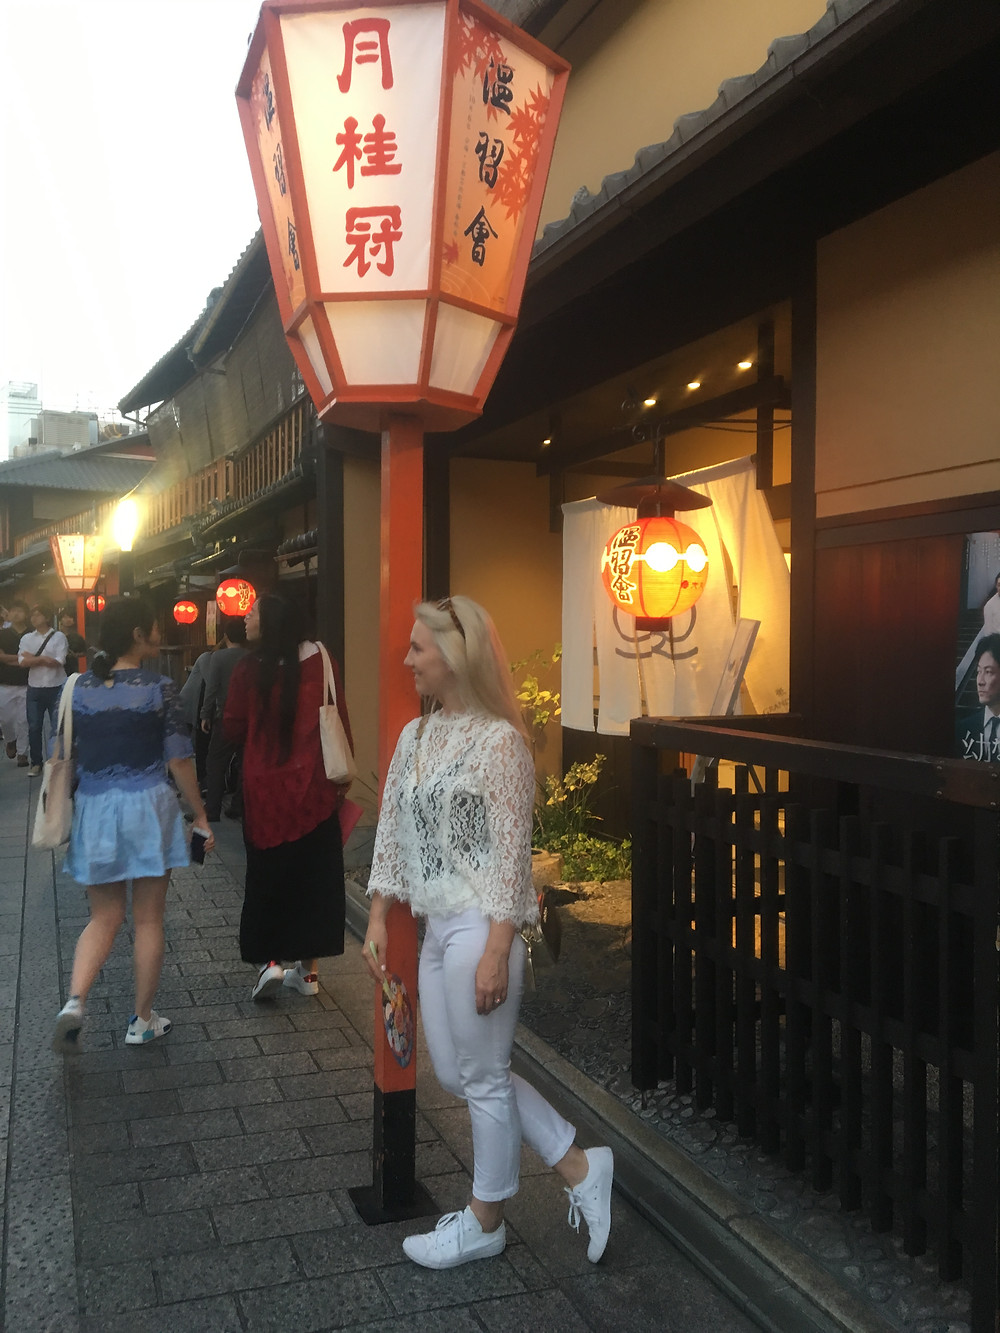 The Gion District in Kyoto Prefecture, Japan